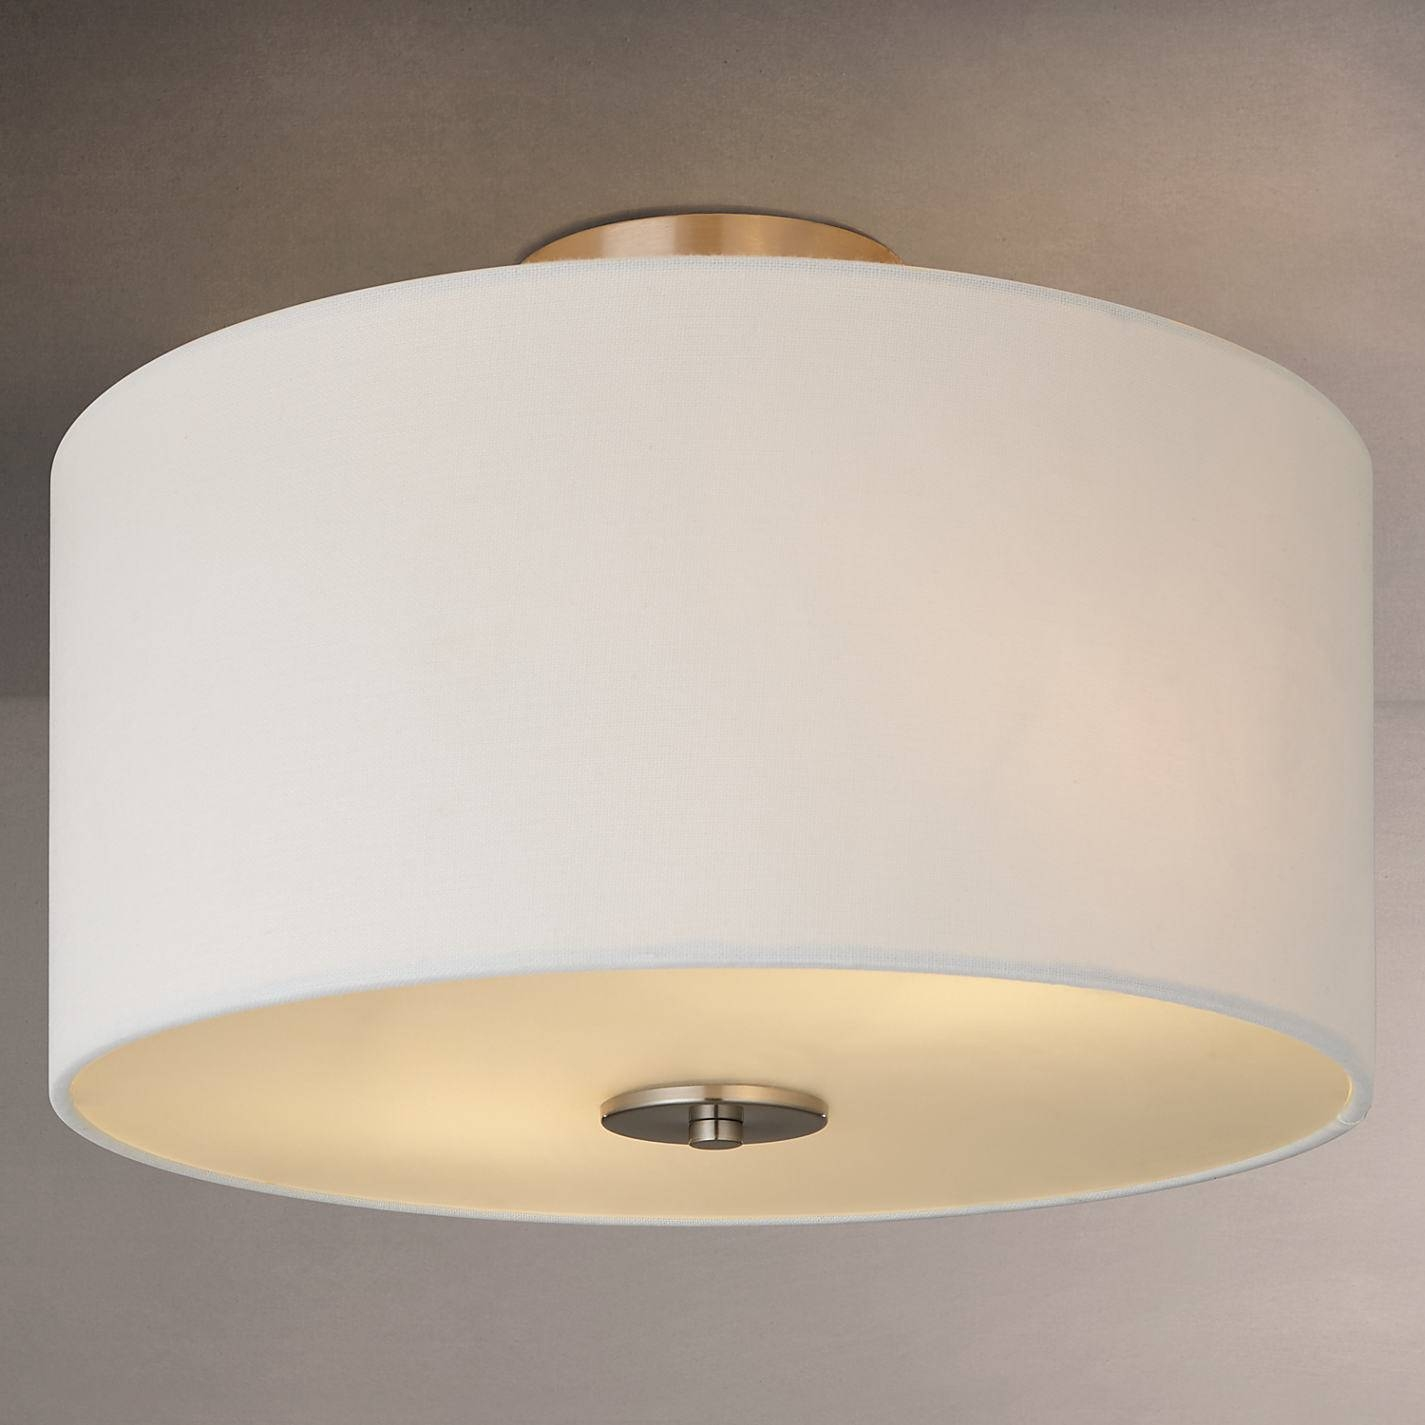 Luxury Semi Flush Ceiling Light 85 For Pendant Lights Modern With with regard to John Lewis Ceiling Pendant Lights (Image 14 of 15)